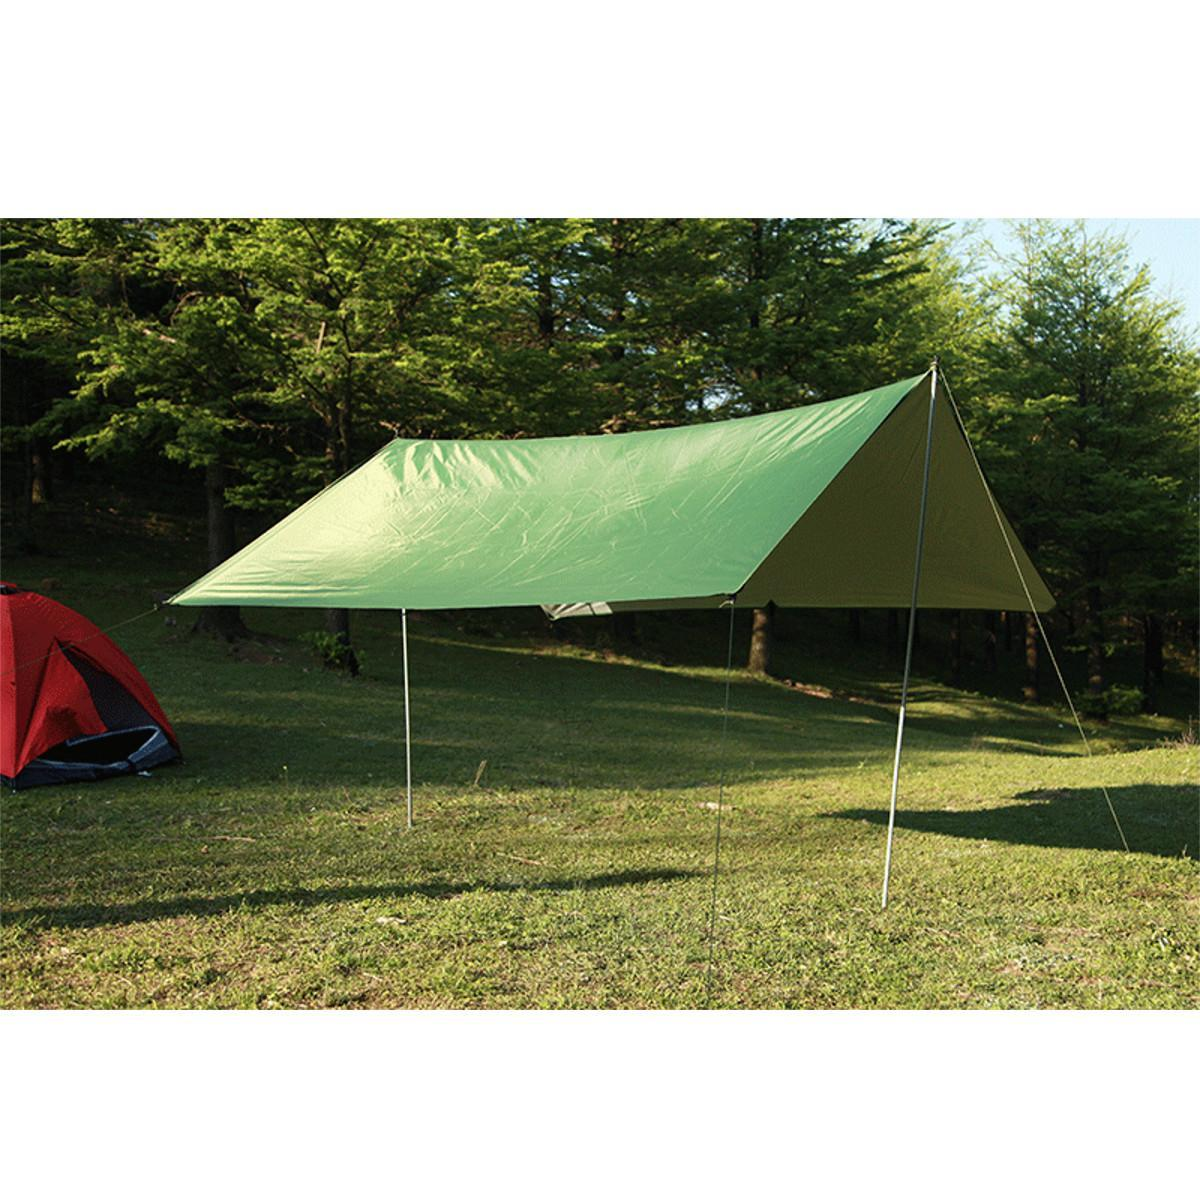 Wholesale 3mx3m Waterproof Sun Shelter Tarp Survival C&ing Climbing Outdoor Tent Patio Sun Shade Awning Canopy Garden Tent Shade Discount C&ing Tents ...  sc 1 st  DHgate.com & Wholesale 3mx3m Waterproof Sun Shelter Tarp Survival Camping ...